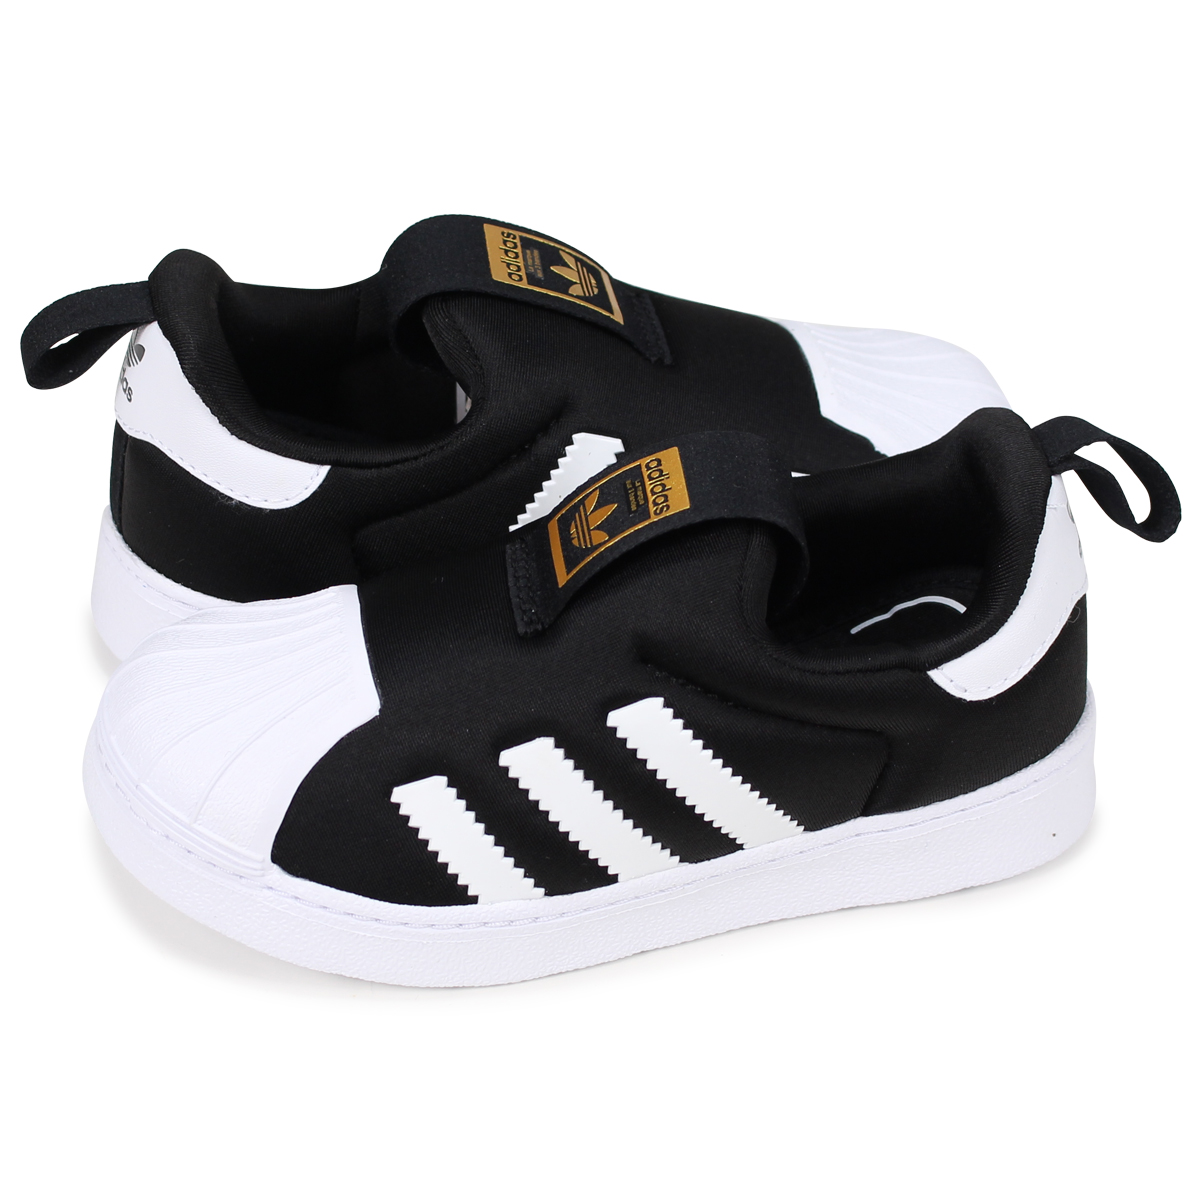 adidas Originals SUPERSTAR 360 I Adidas originals superstar kids baby  sneakers S82711 black  the 2 28 additional arrival  31ca66f2d35